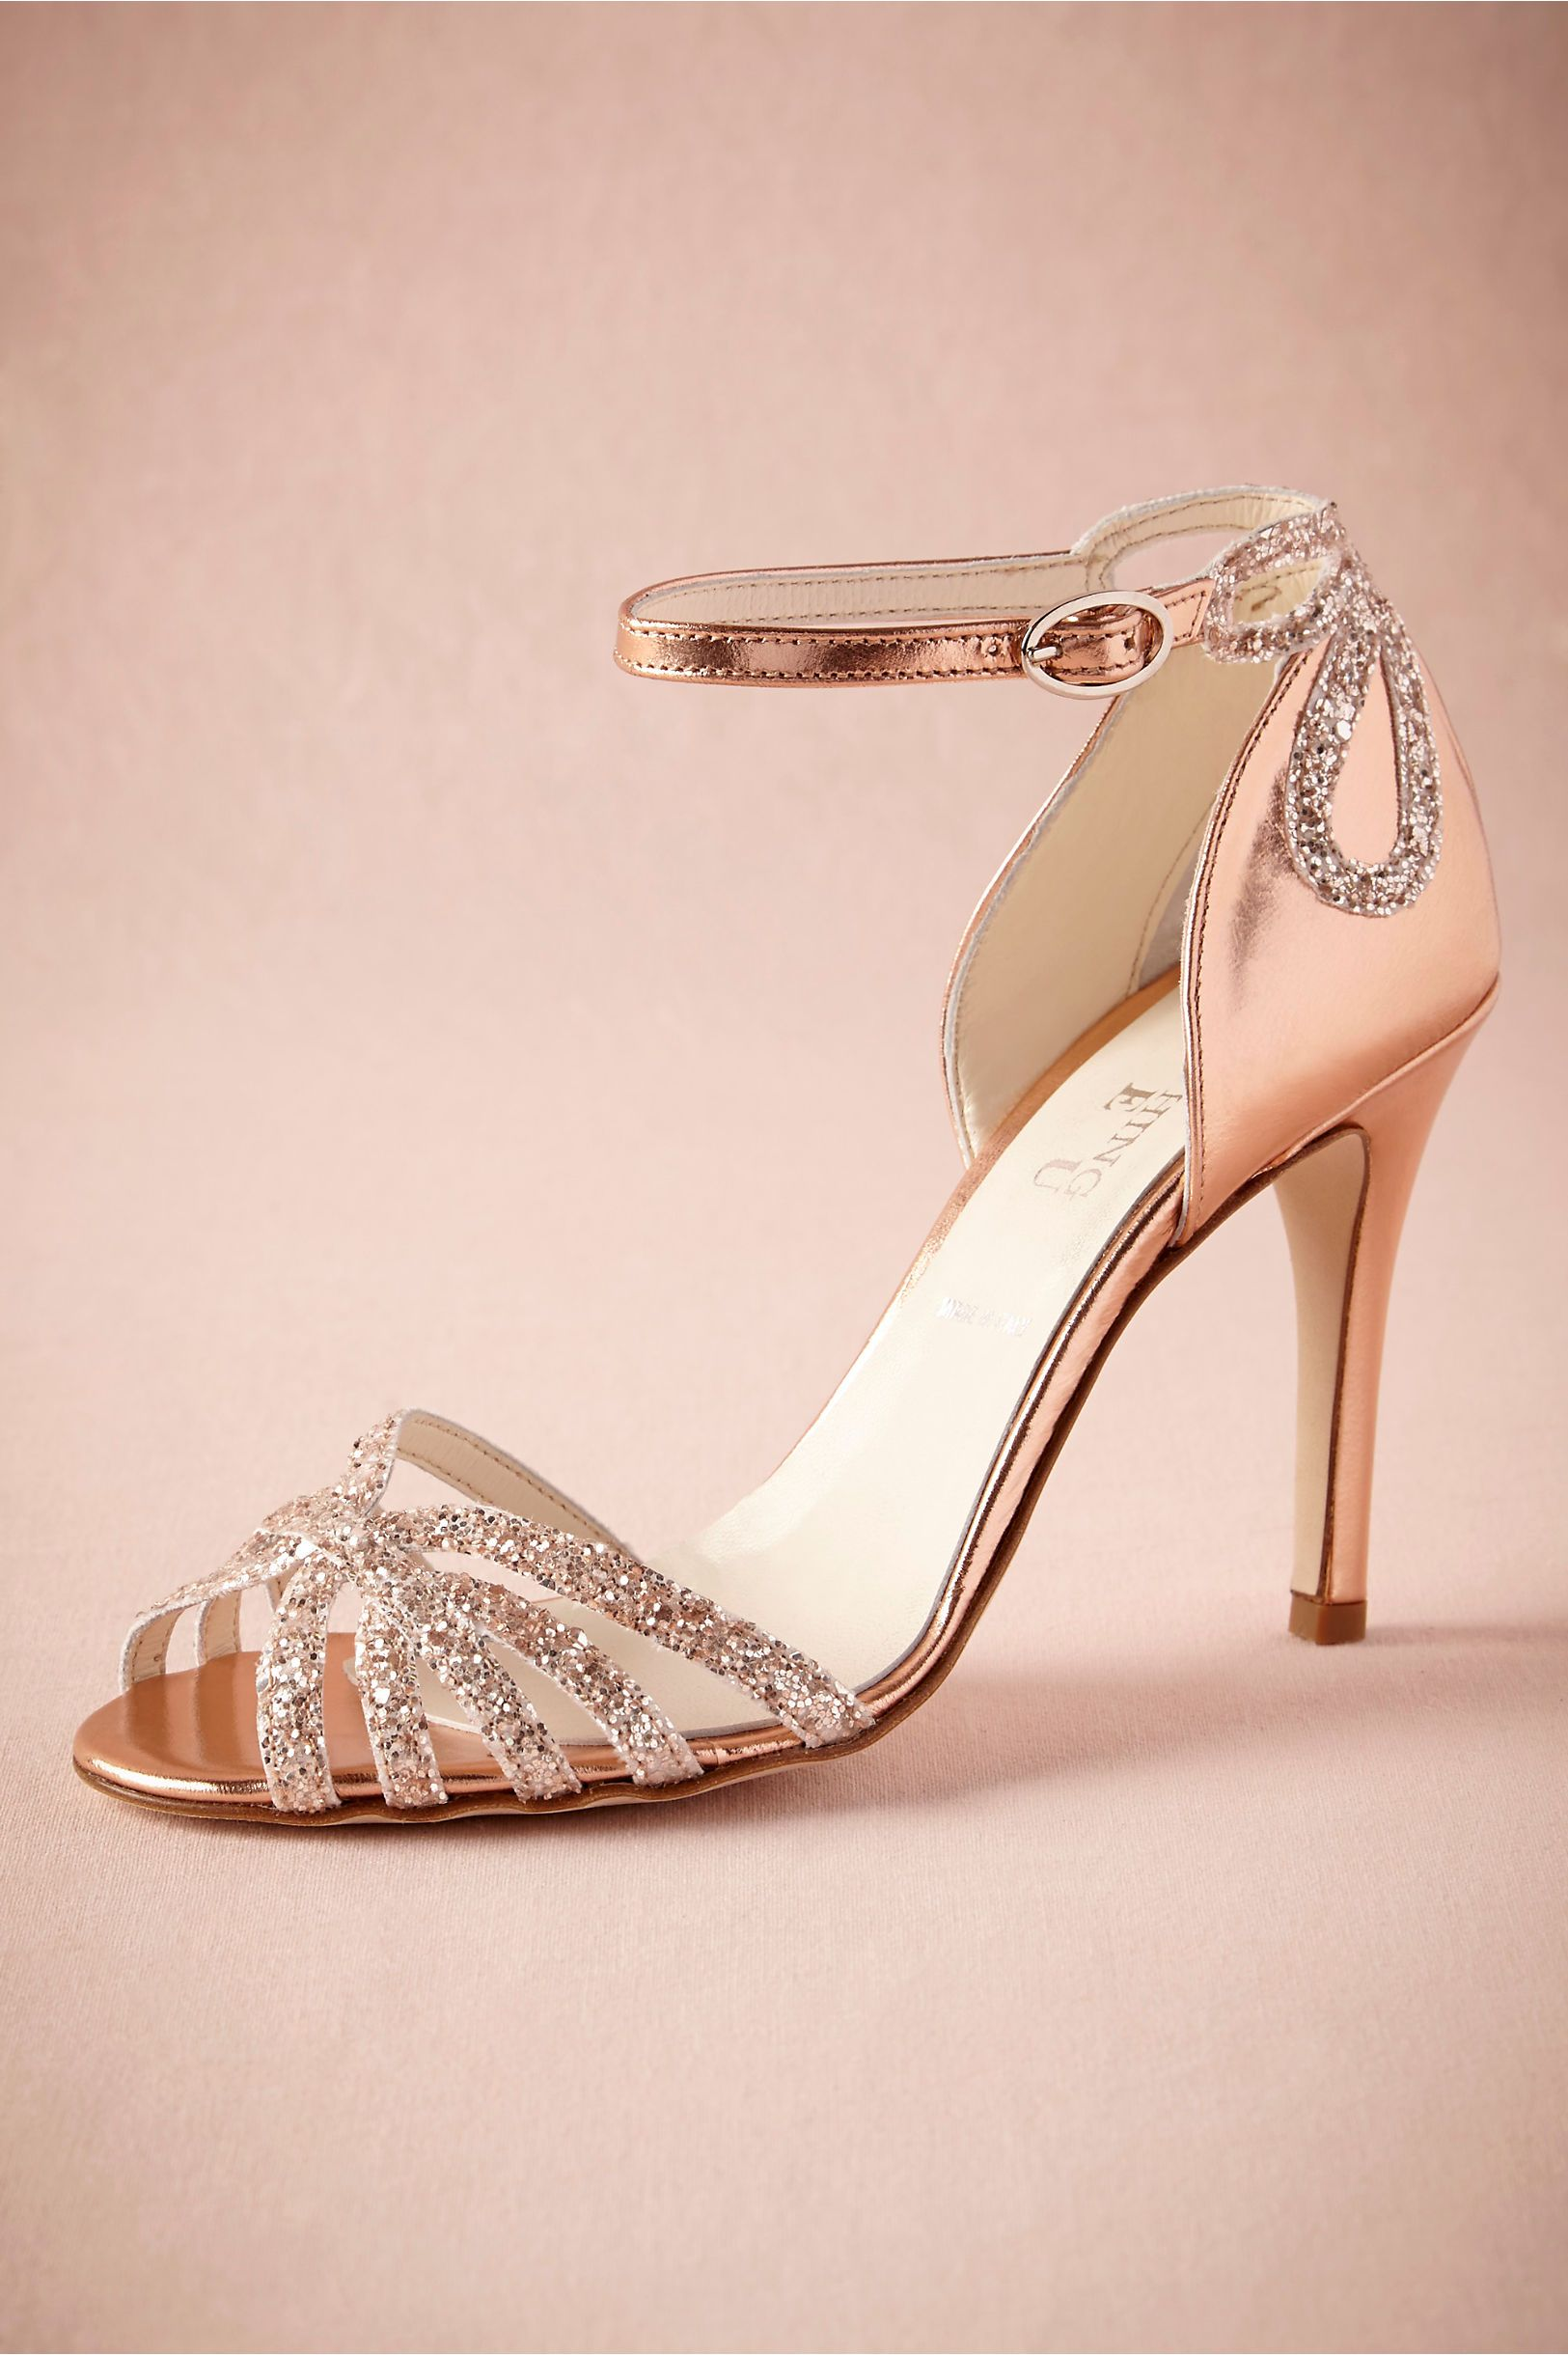 46++ Rose gold wedding shoes ideas ideas in 2021